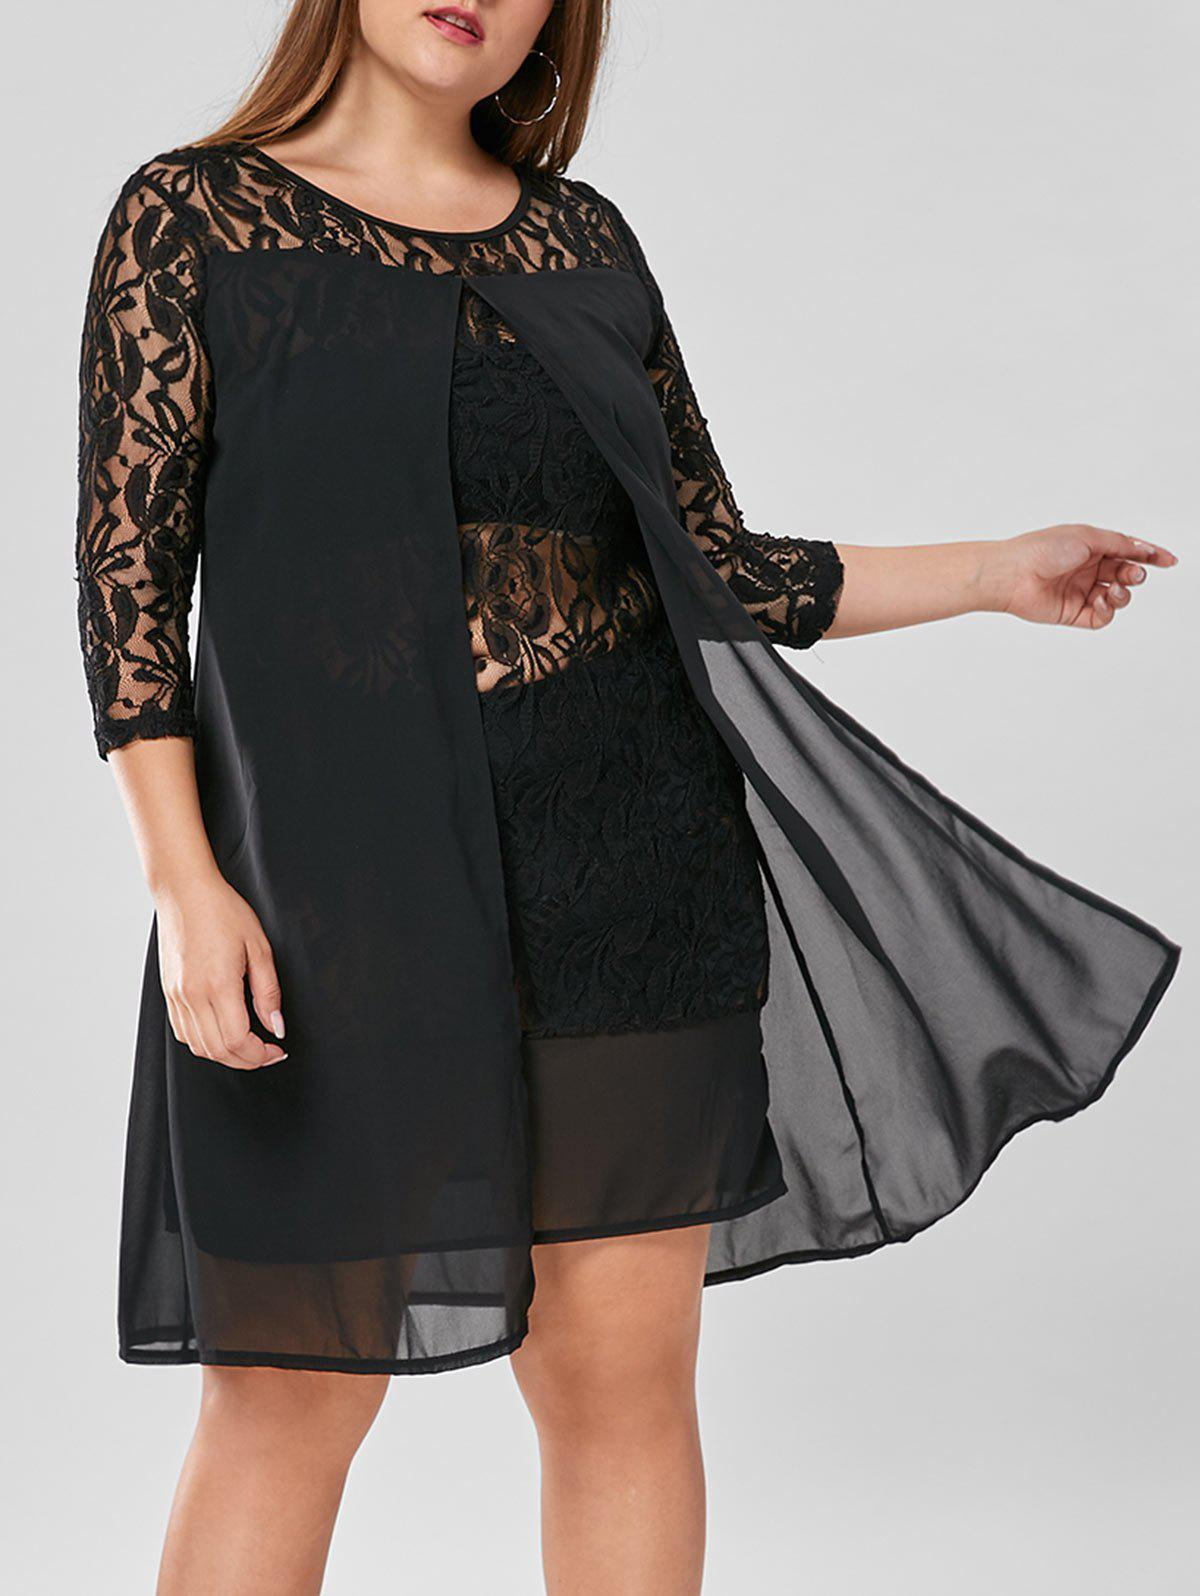 Knee Length Plus Size Lace Trim DressWOMEN<br><br>Size: 4XL; Color: BLACK; Style: Brief; Material: Polyester; Silhouette: Straight; Dresses Length: Knee-Length; Neckline: Round Collar; Sleeve Length: 3/4 Length Sleeves; Pattern Type: Solid Color; With Belt: No; Season: Fall,Summer; Weight: 0.3500kg; Package Contents: 1 x Dress;